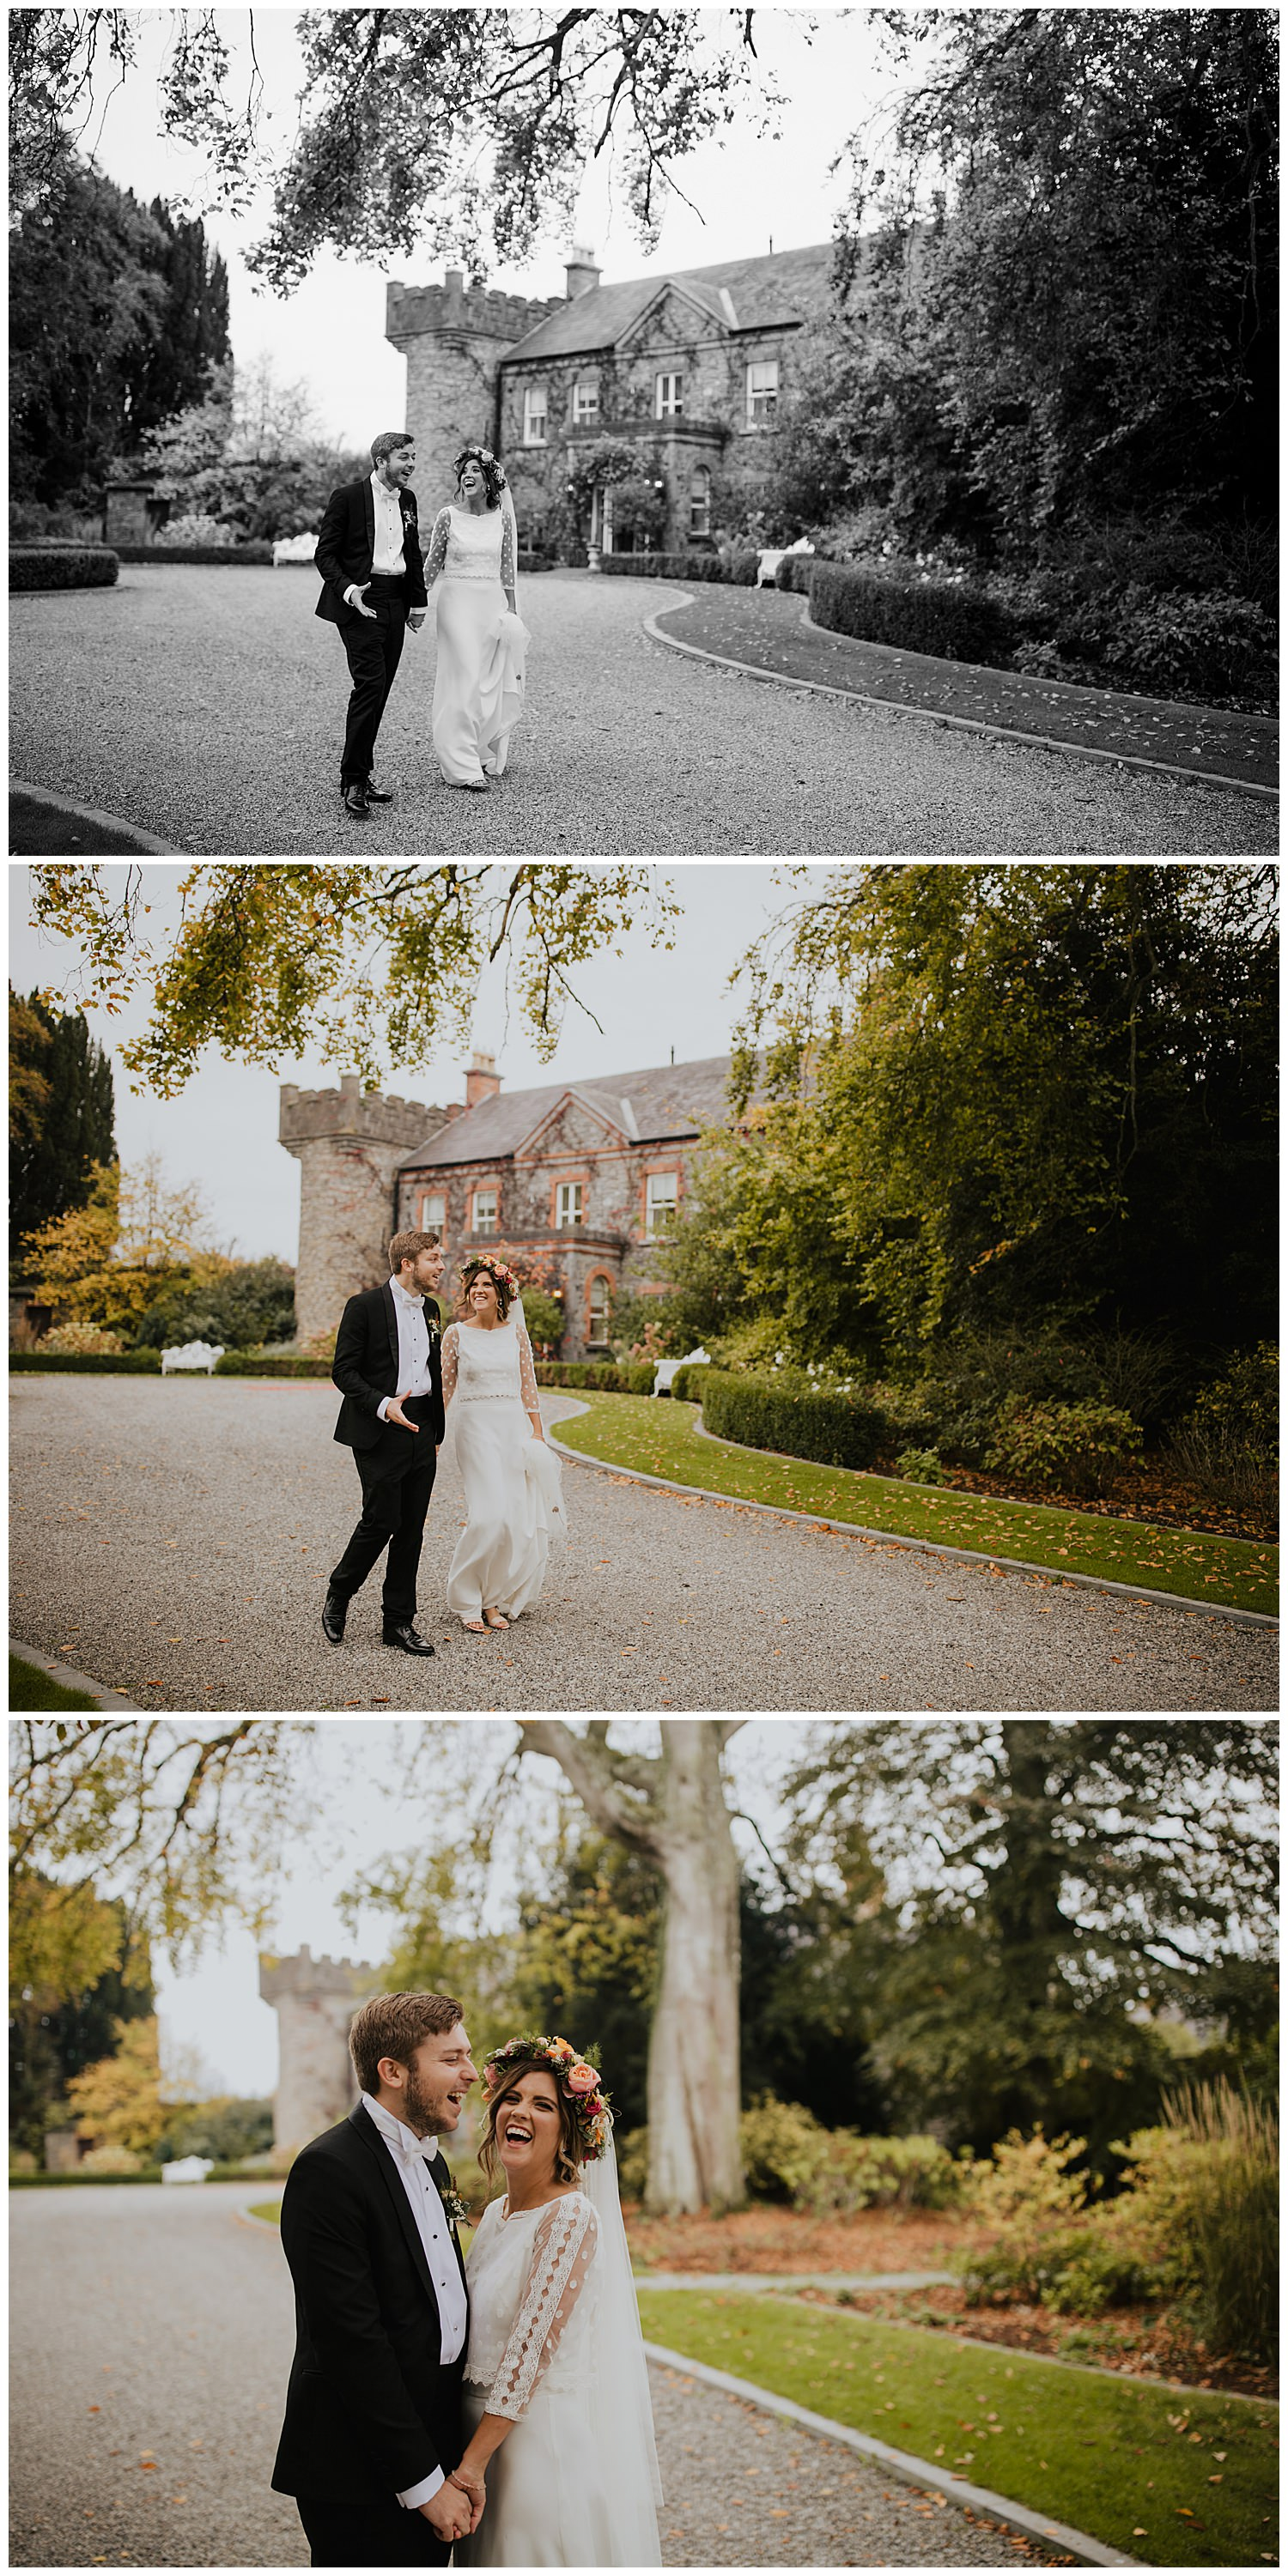 a+s_ballymagarvey_village_wedding_photographer_livia_figueiredo_32.jpg